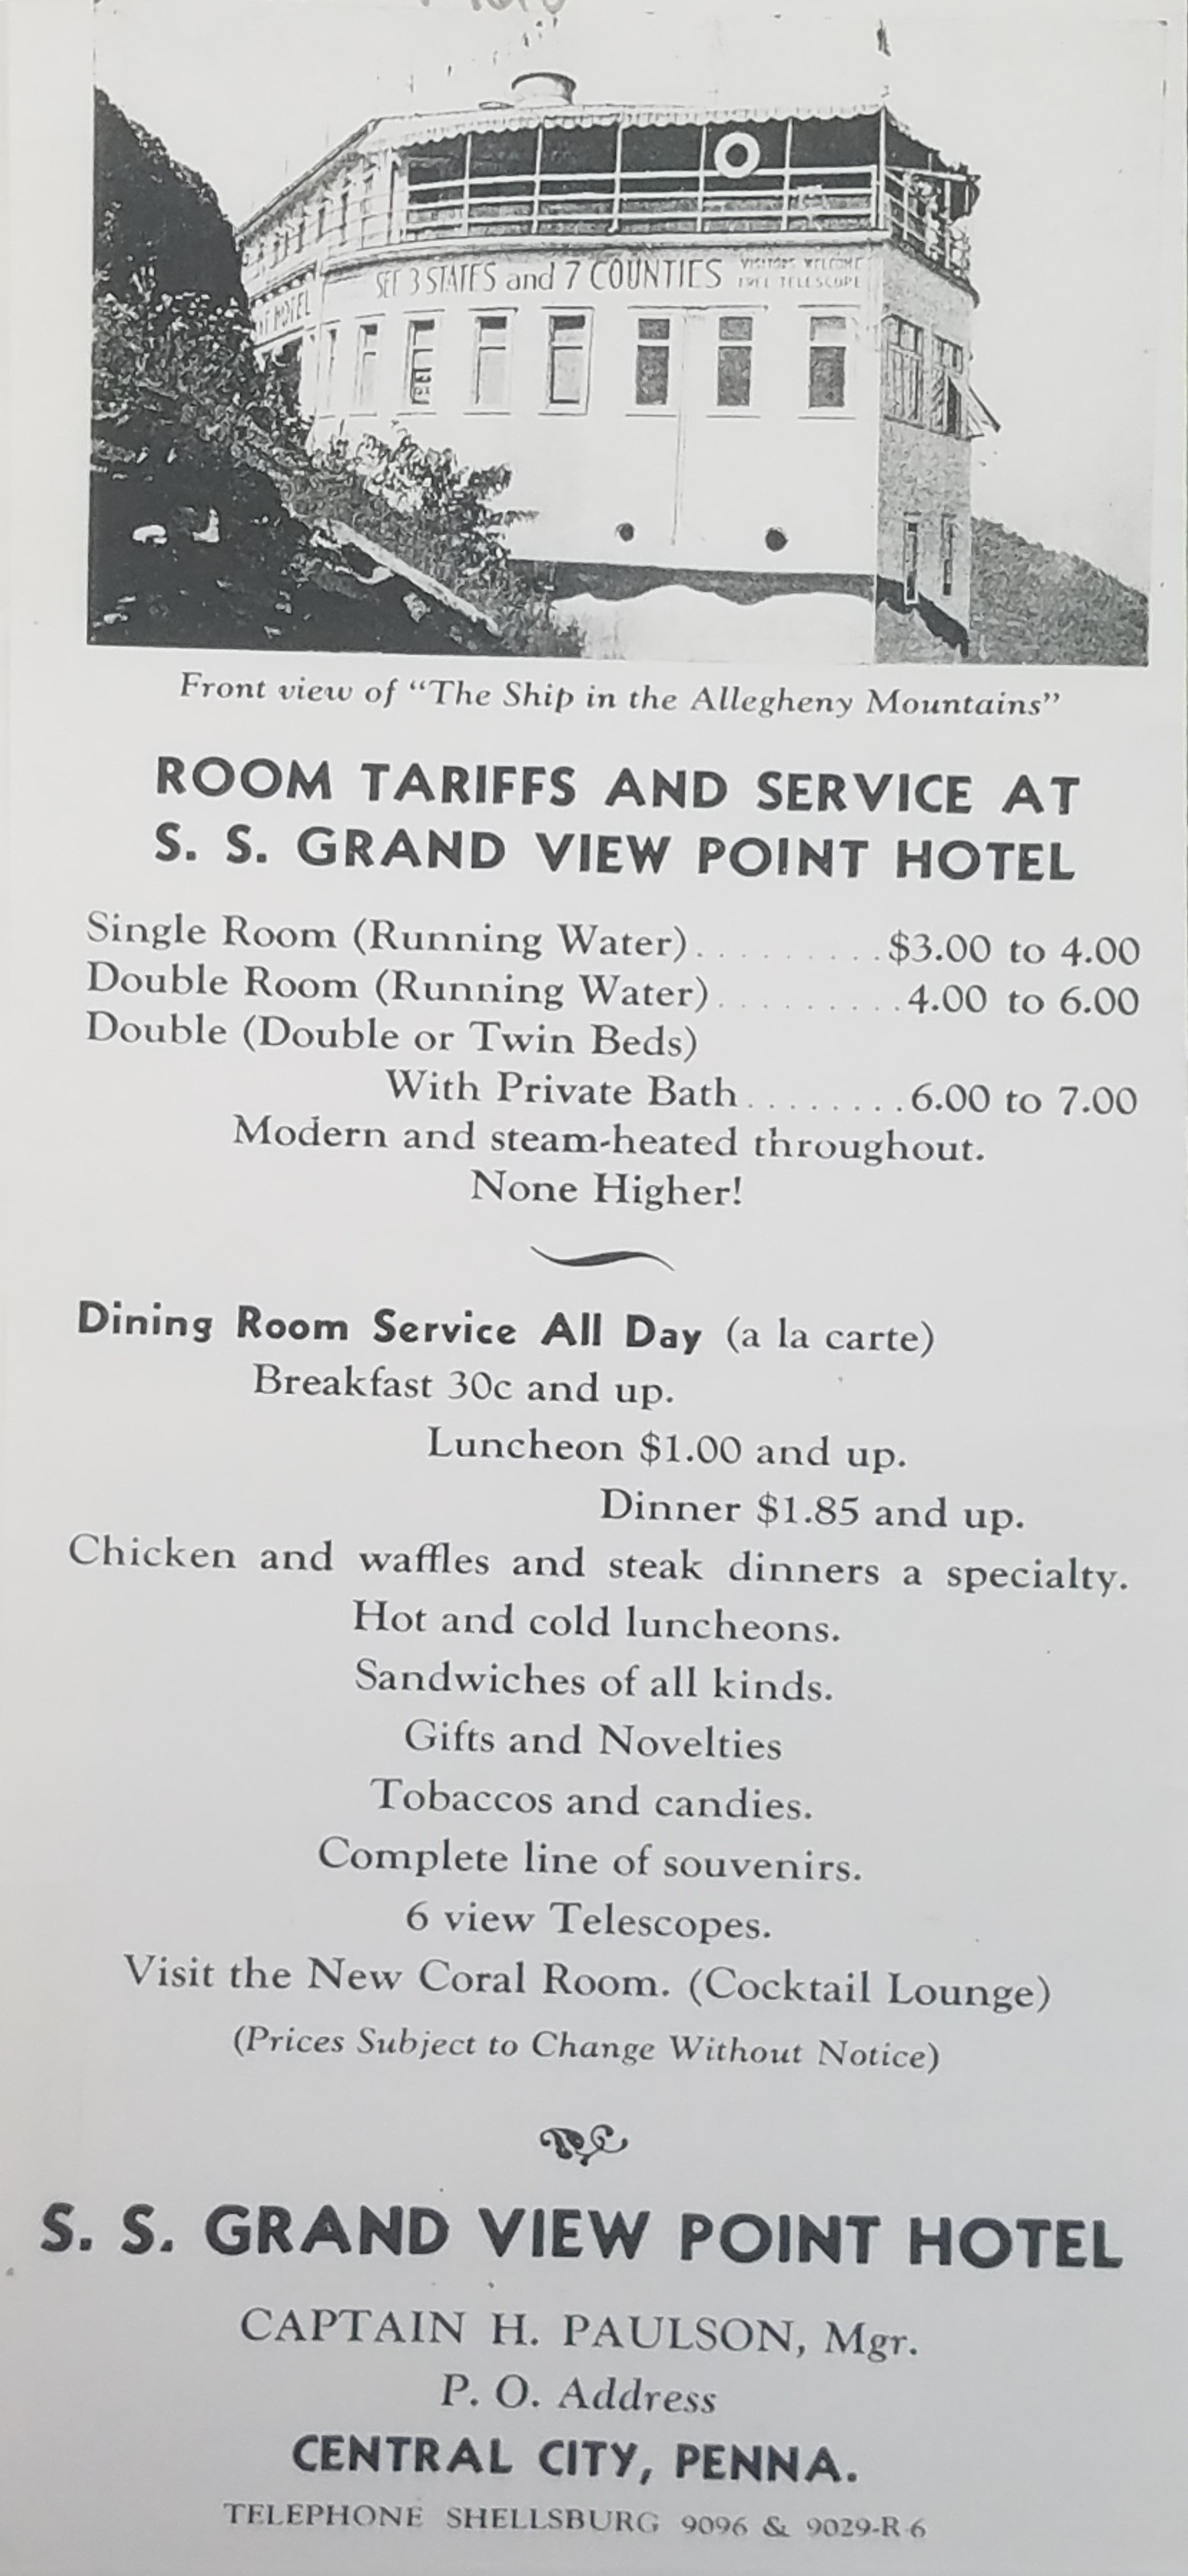 A list of amenities provided by the ship hotel. Photo courtesy of the Lincoln Highway Heritage Corridor.